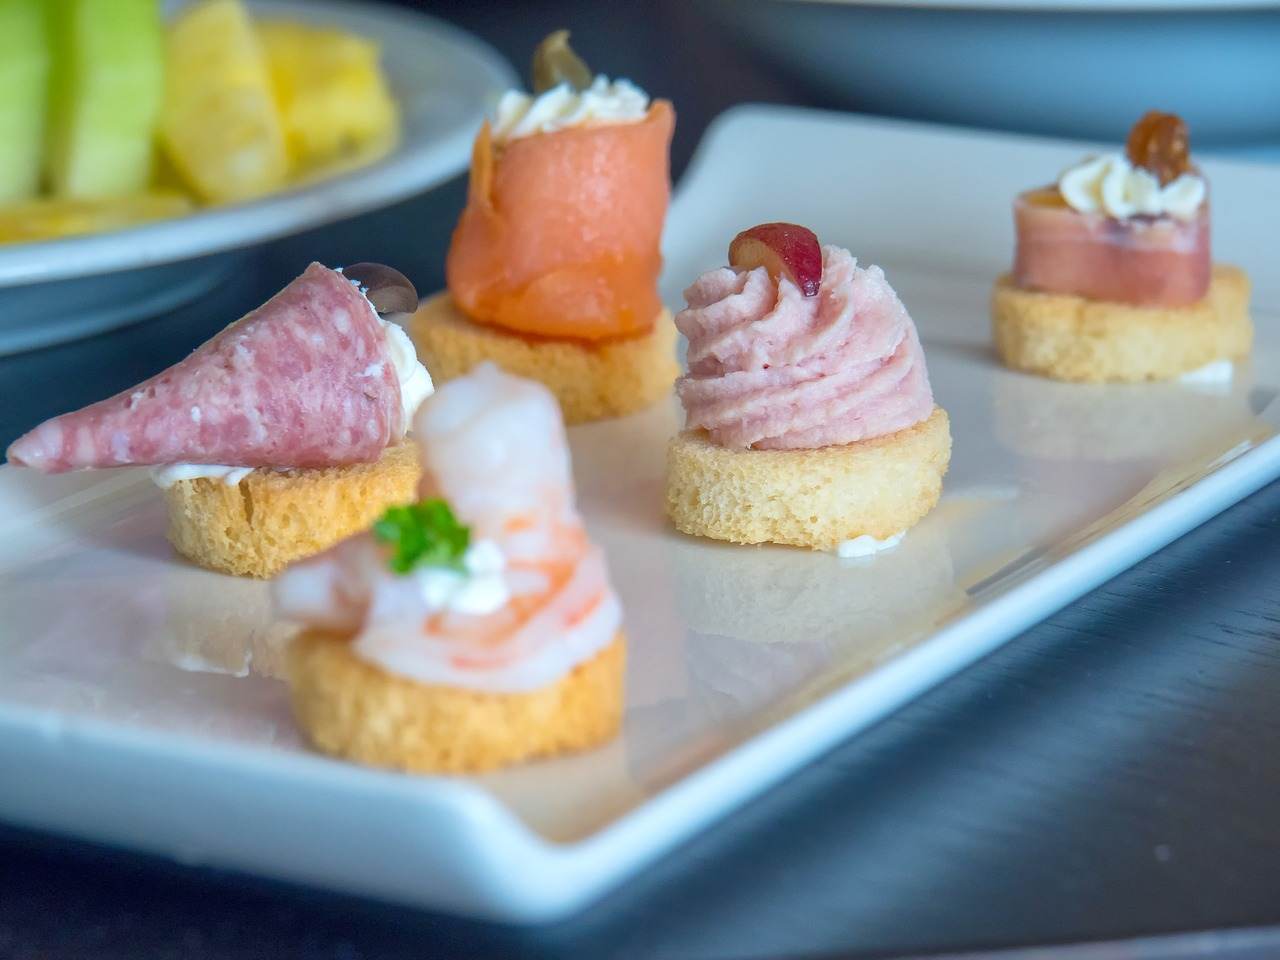 Hors D'oeuvres on a plate.